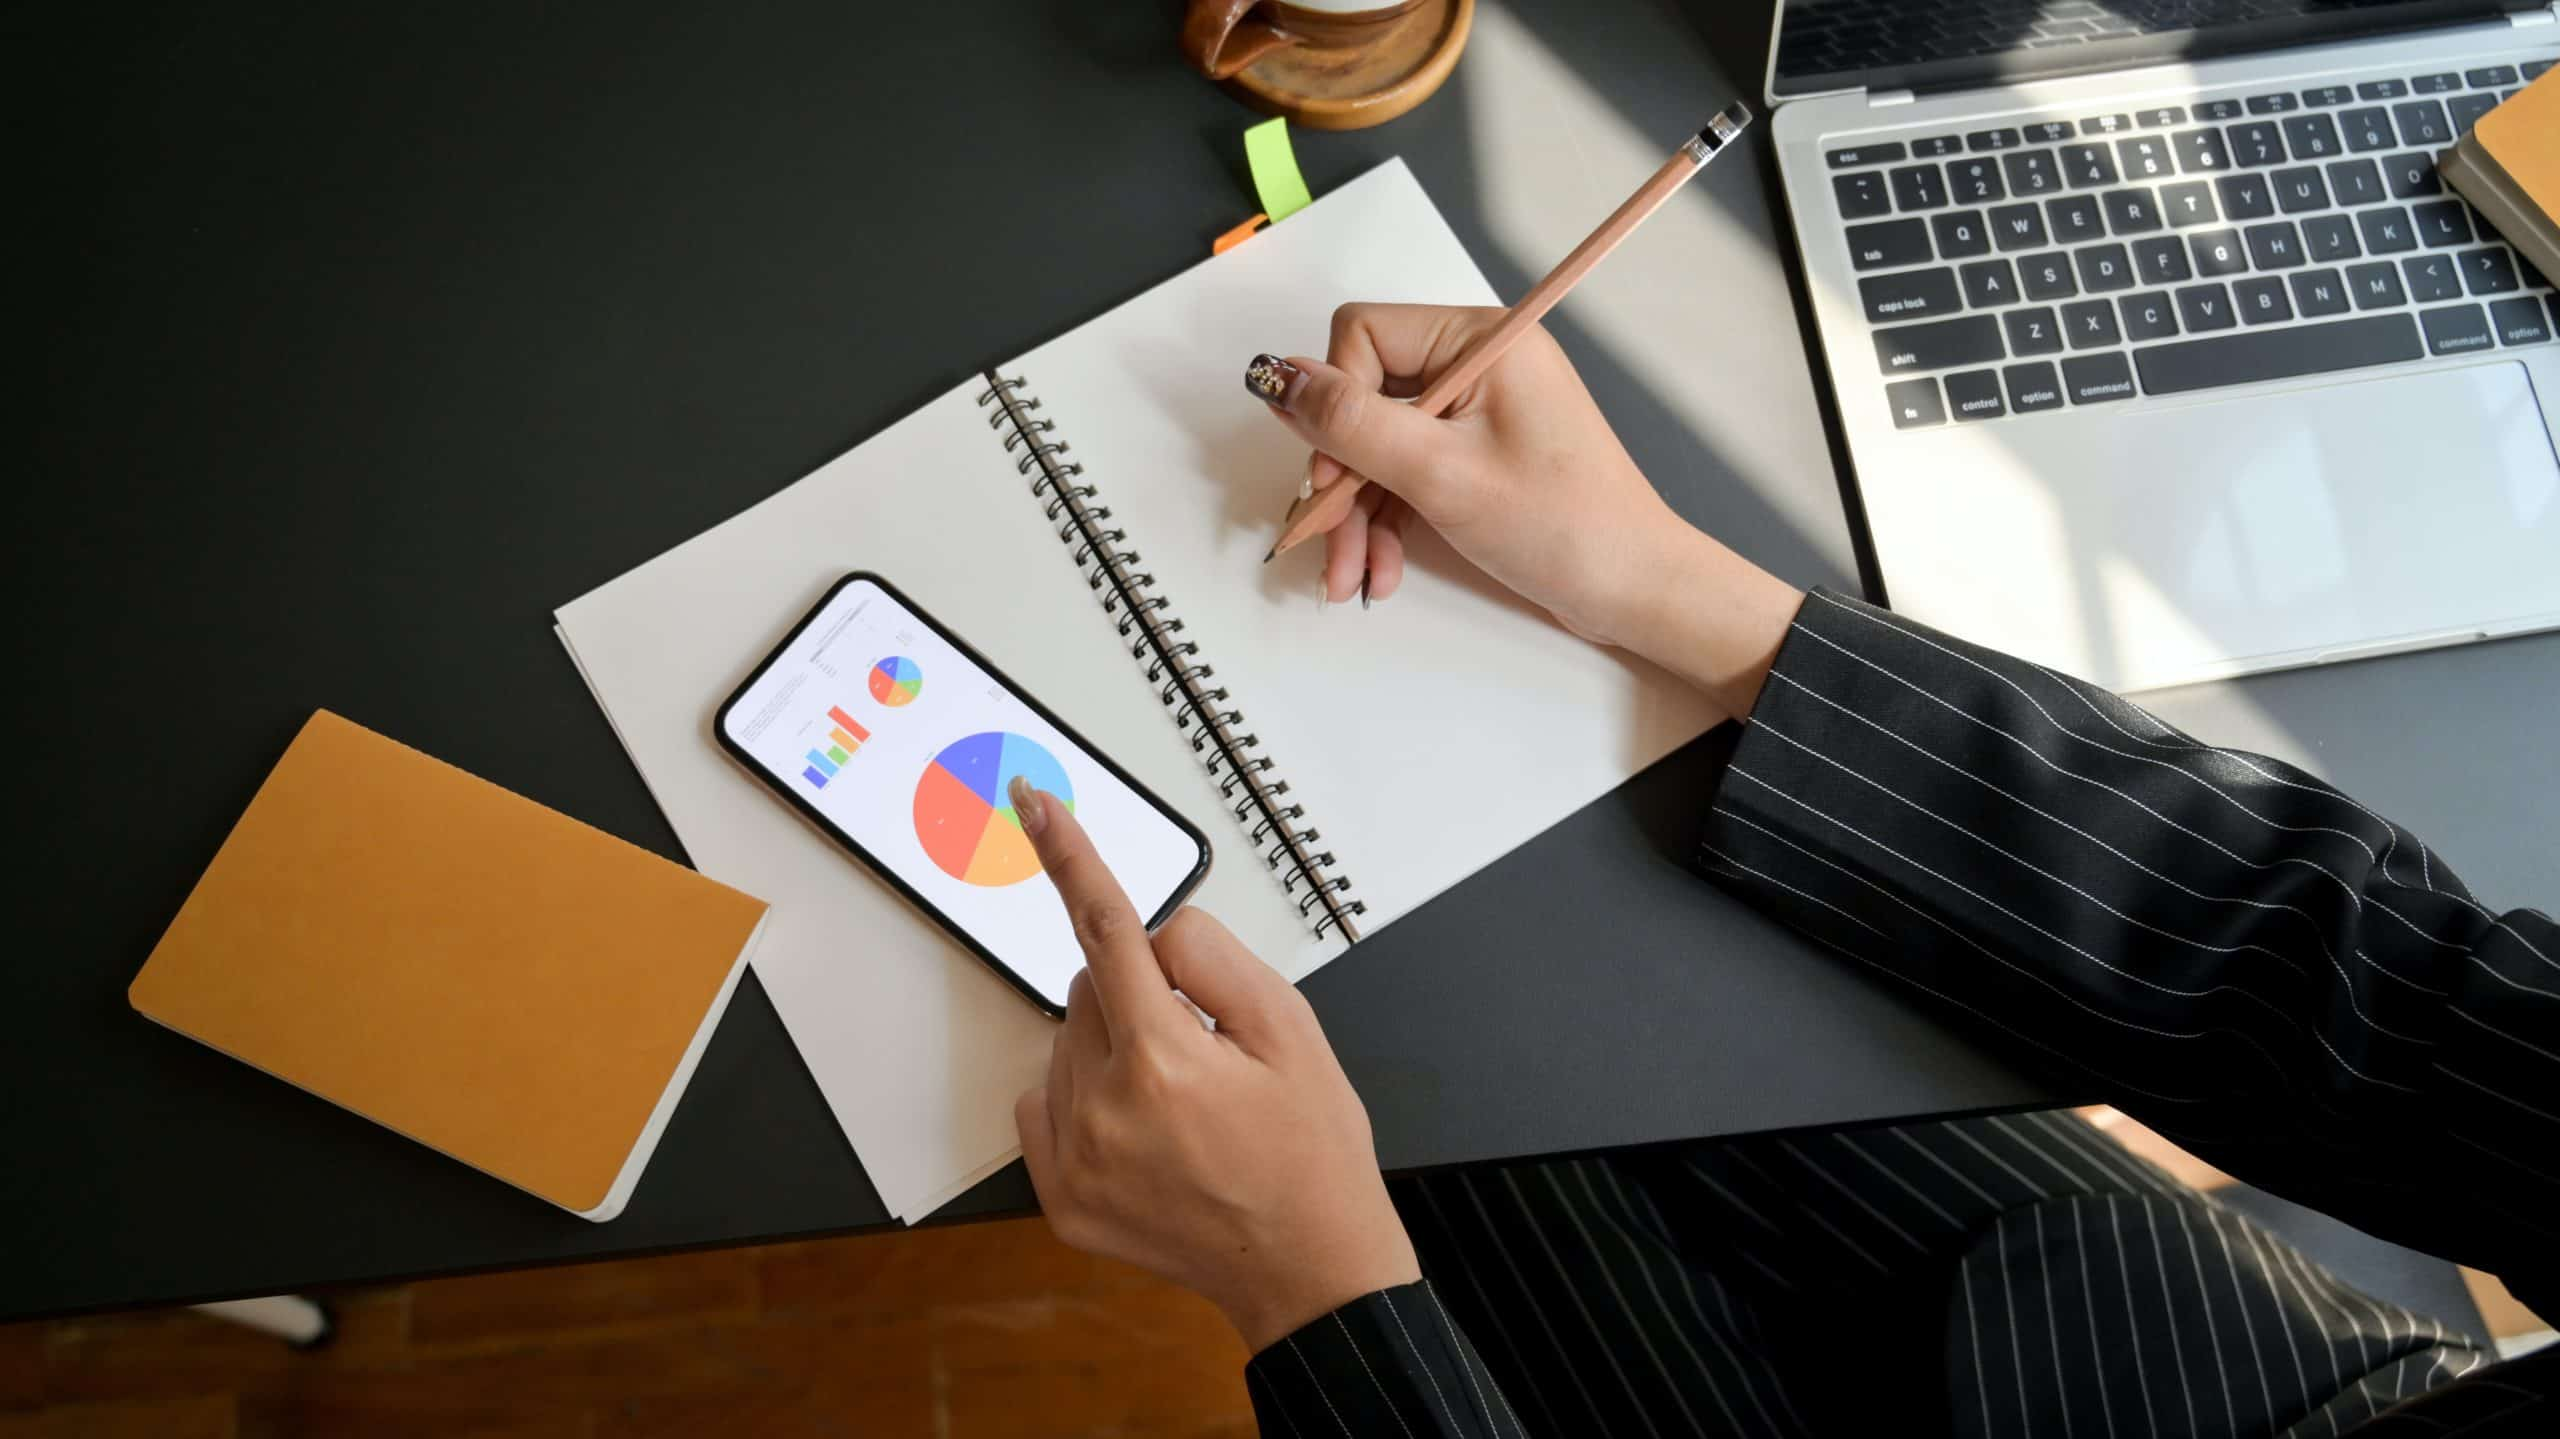 Man writing in a notebook with his iPhone next to him